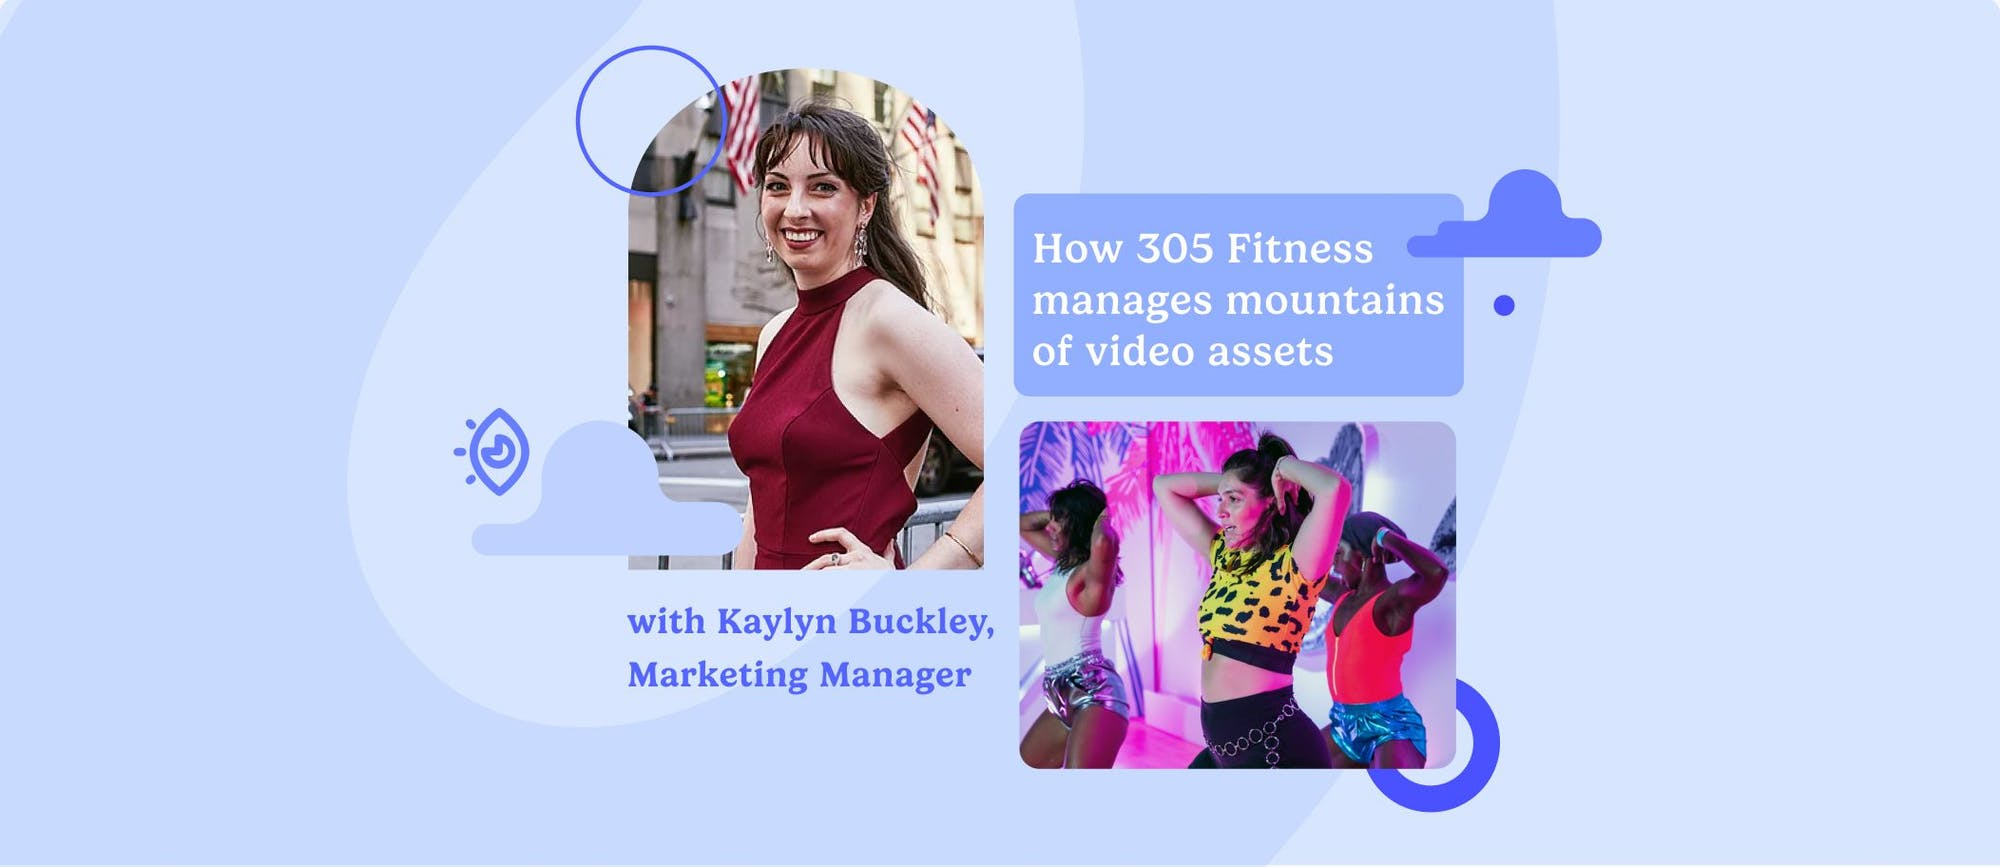 Kaylyn Buckley, Marketing Manager at 305 Fitness, and an image from a 305 fitness live class